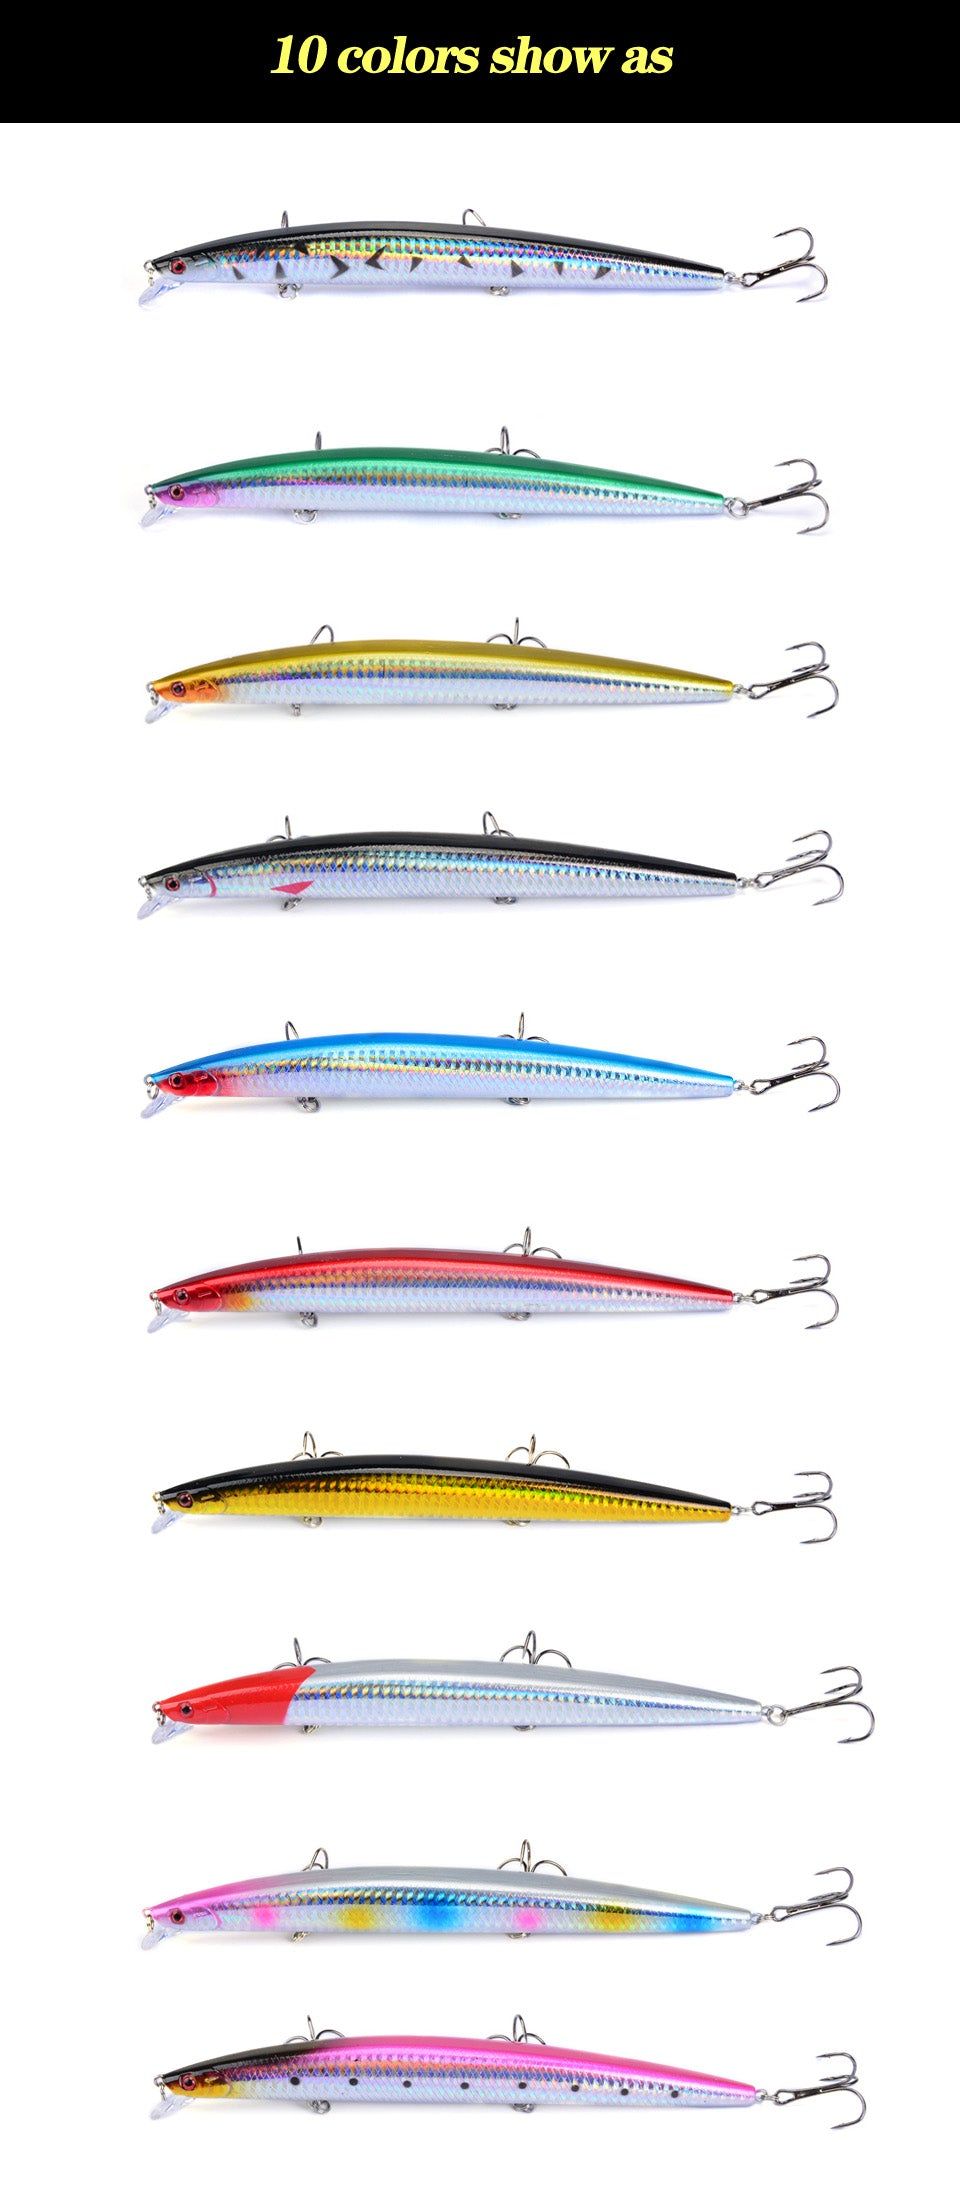 Minnow Fishing Lures 18cm/26g . 10 pieces.